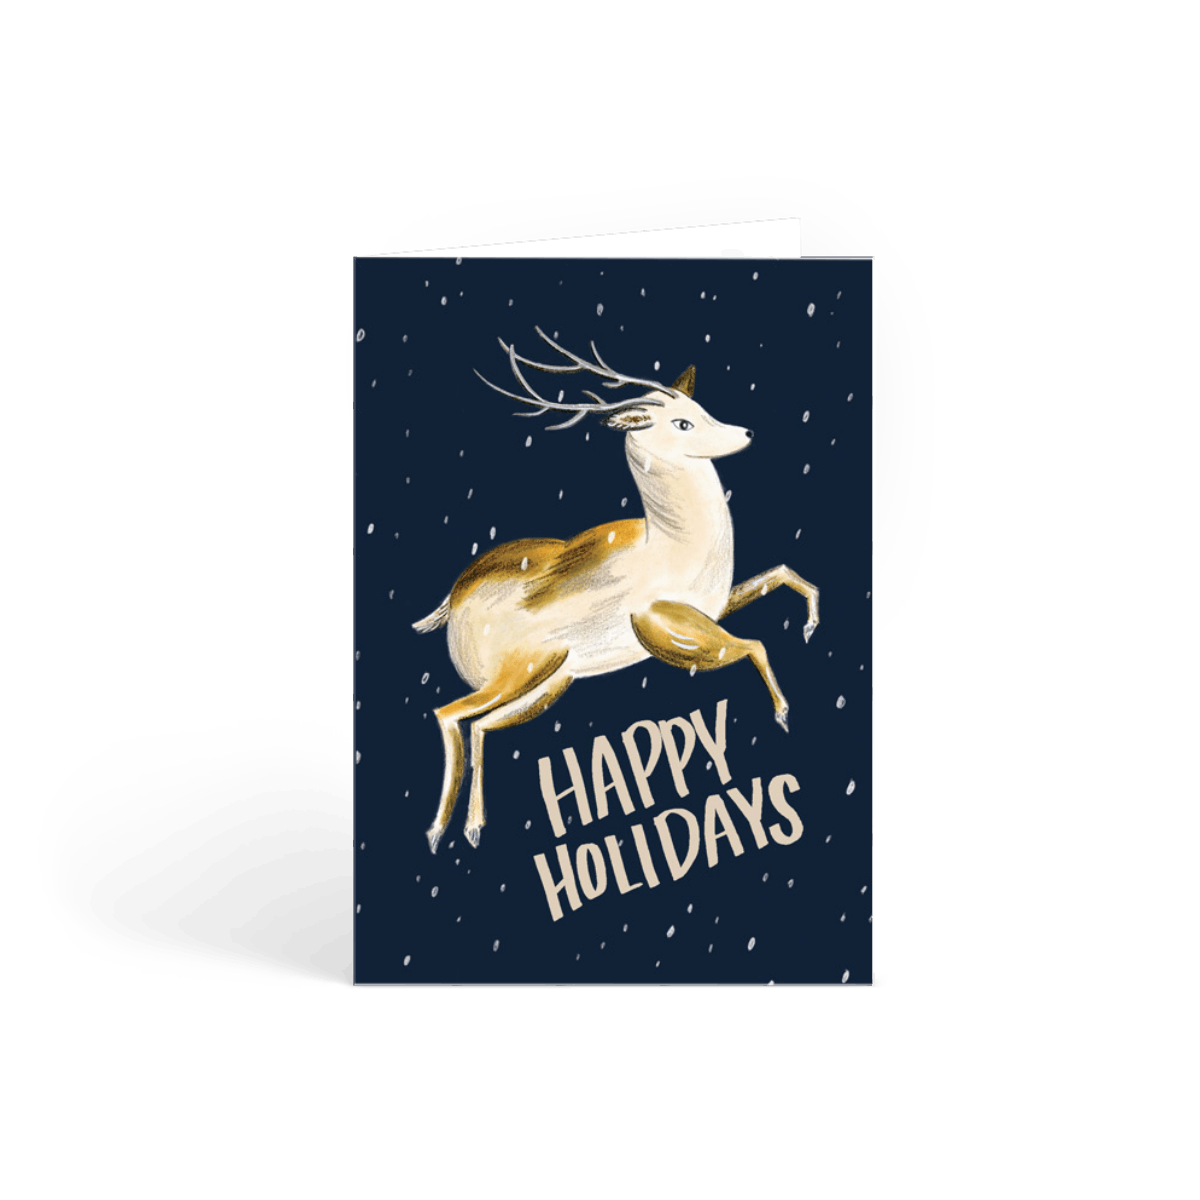 Https%3a%2f%2fwww.papier.com%2fproduct image%2f50955%2f2%2fflying reindeer 12475 front 1540223976.png?ixlib=rb 1.1